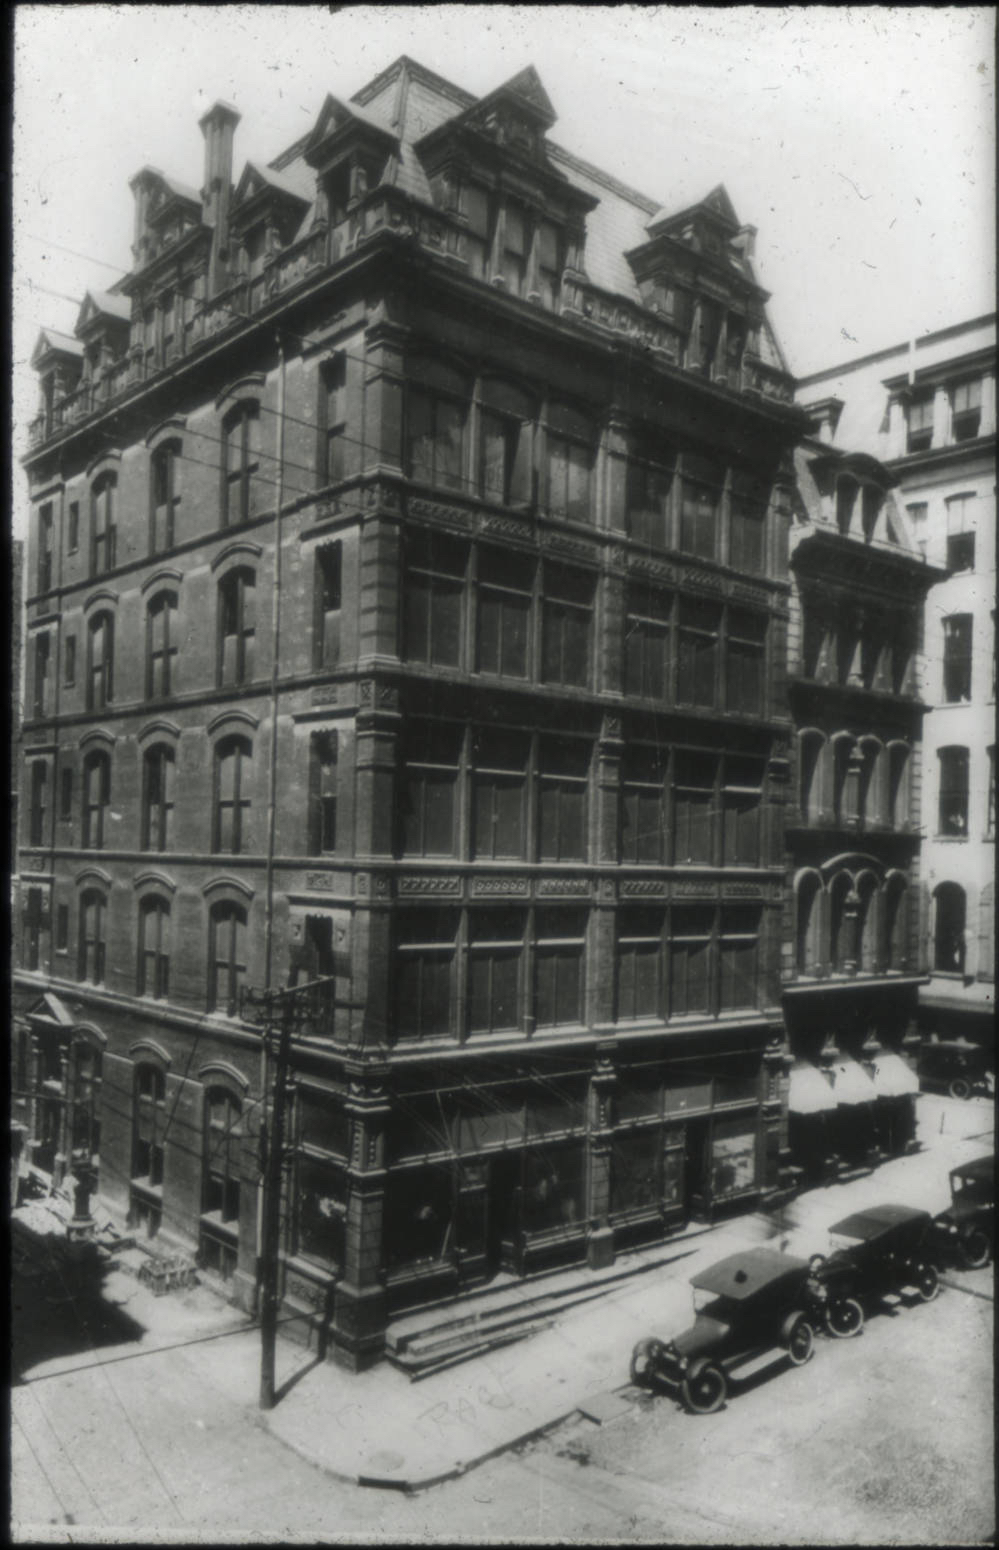 "At the height of his power, George Remus purchased an office complex at 225 Race Street on the southwest corner of Race and Pearl Streets, renaming it the ""Remus Building."" The lobby tile display (allegedly from the famous Rookwood Pottery) spelled out ""Remus,"" which he thought demonstrated his authority. For his second-floor office space, Remus spent $75,000 on lavish furniture, accessories, and equipment, as well as a personal chef.   (Courtesy Public Library of Cincinnati and Hamilton County, Cincinnati History Slide Collection)"